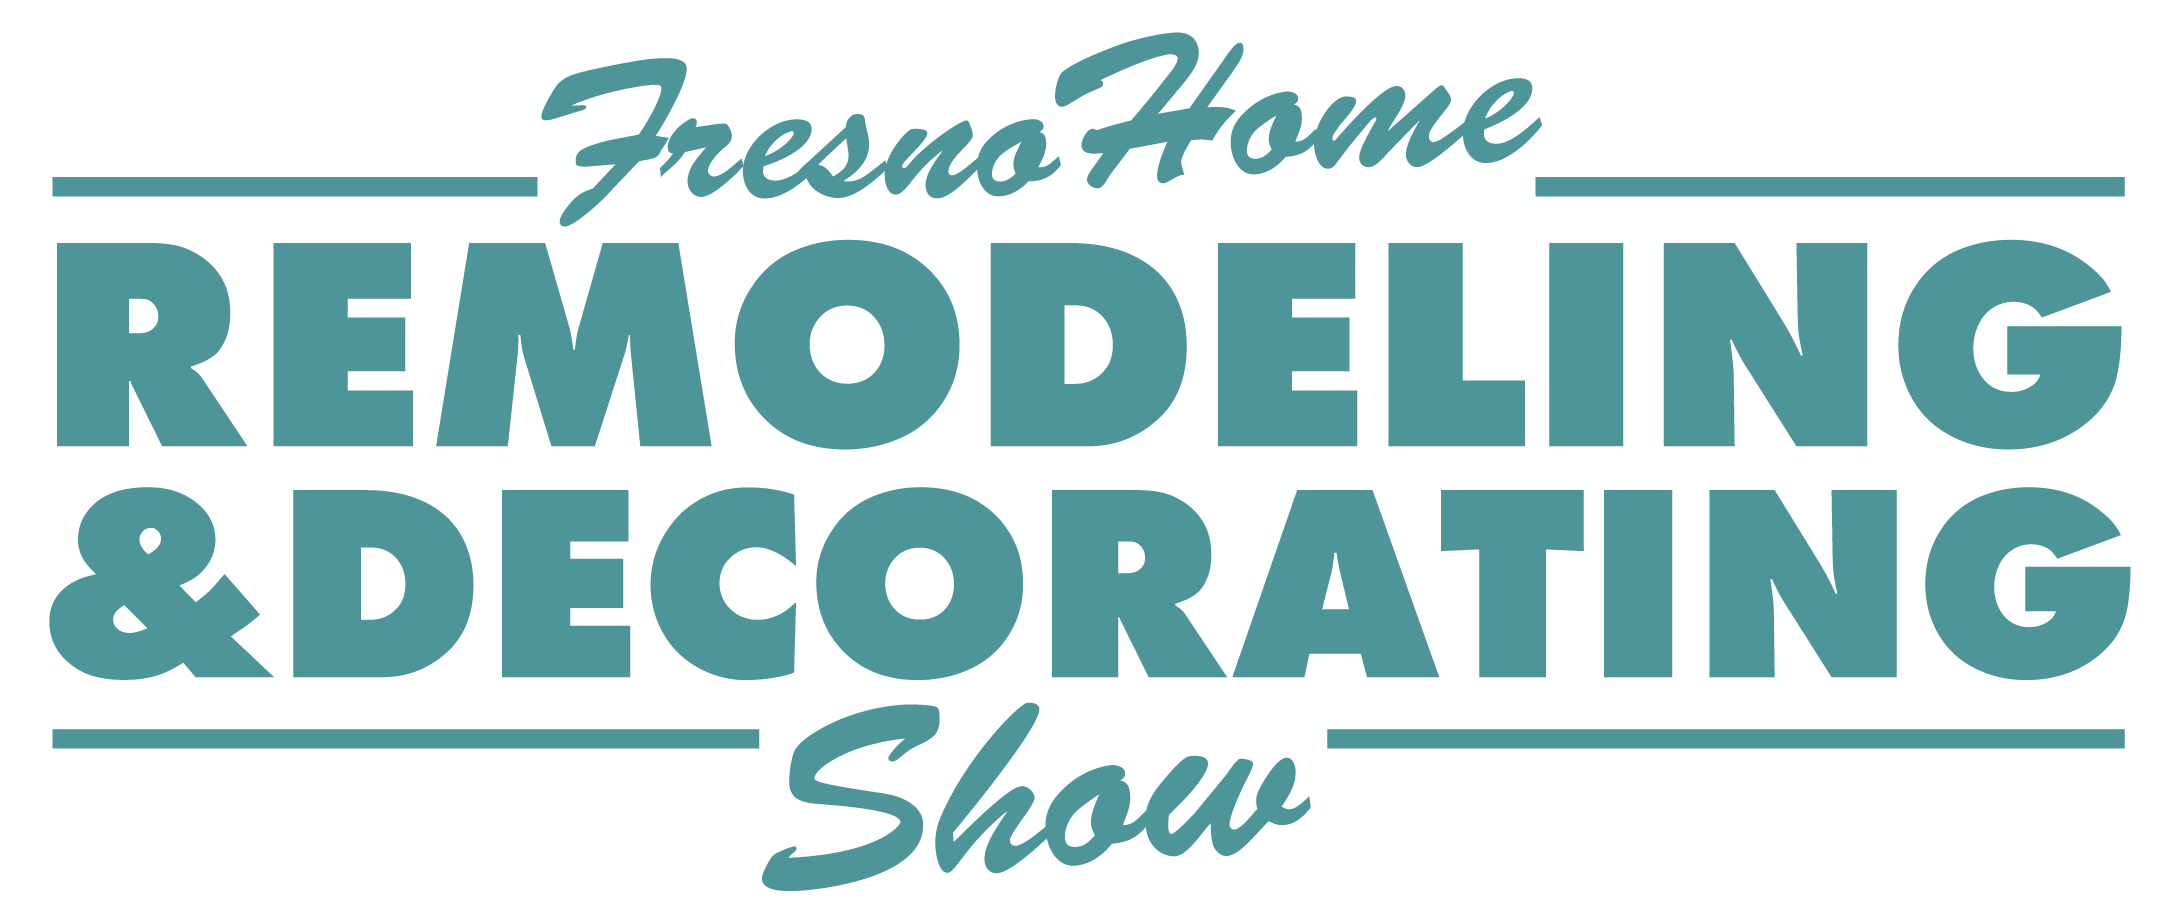 july show remodeling and decorating show logos